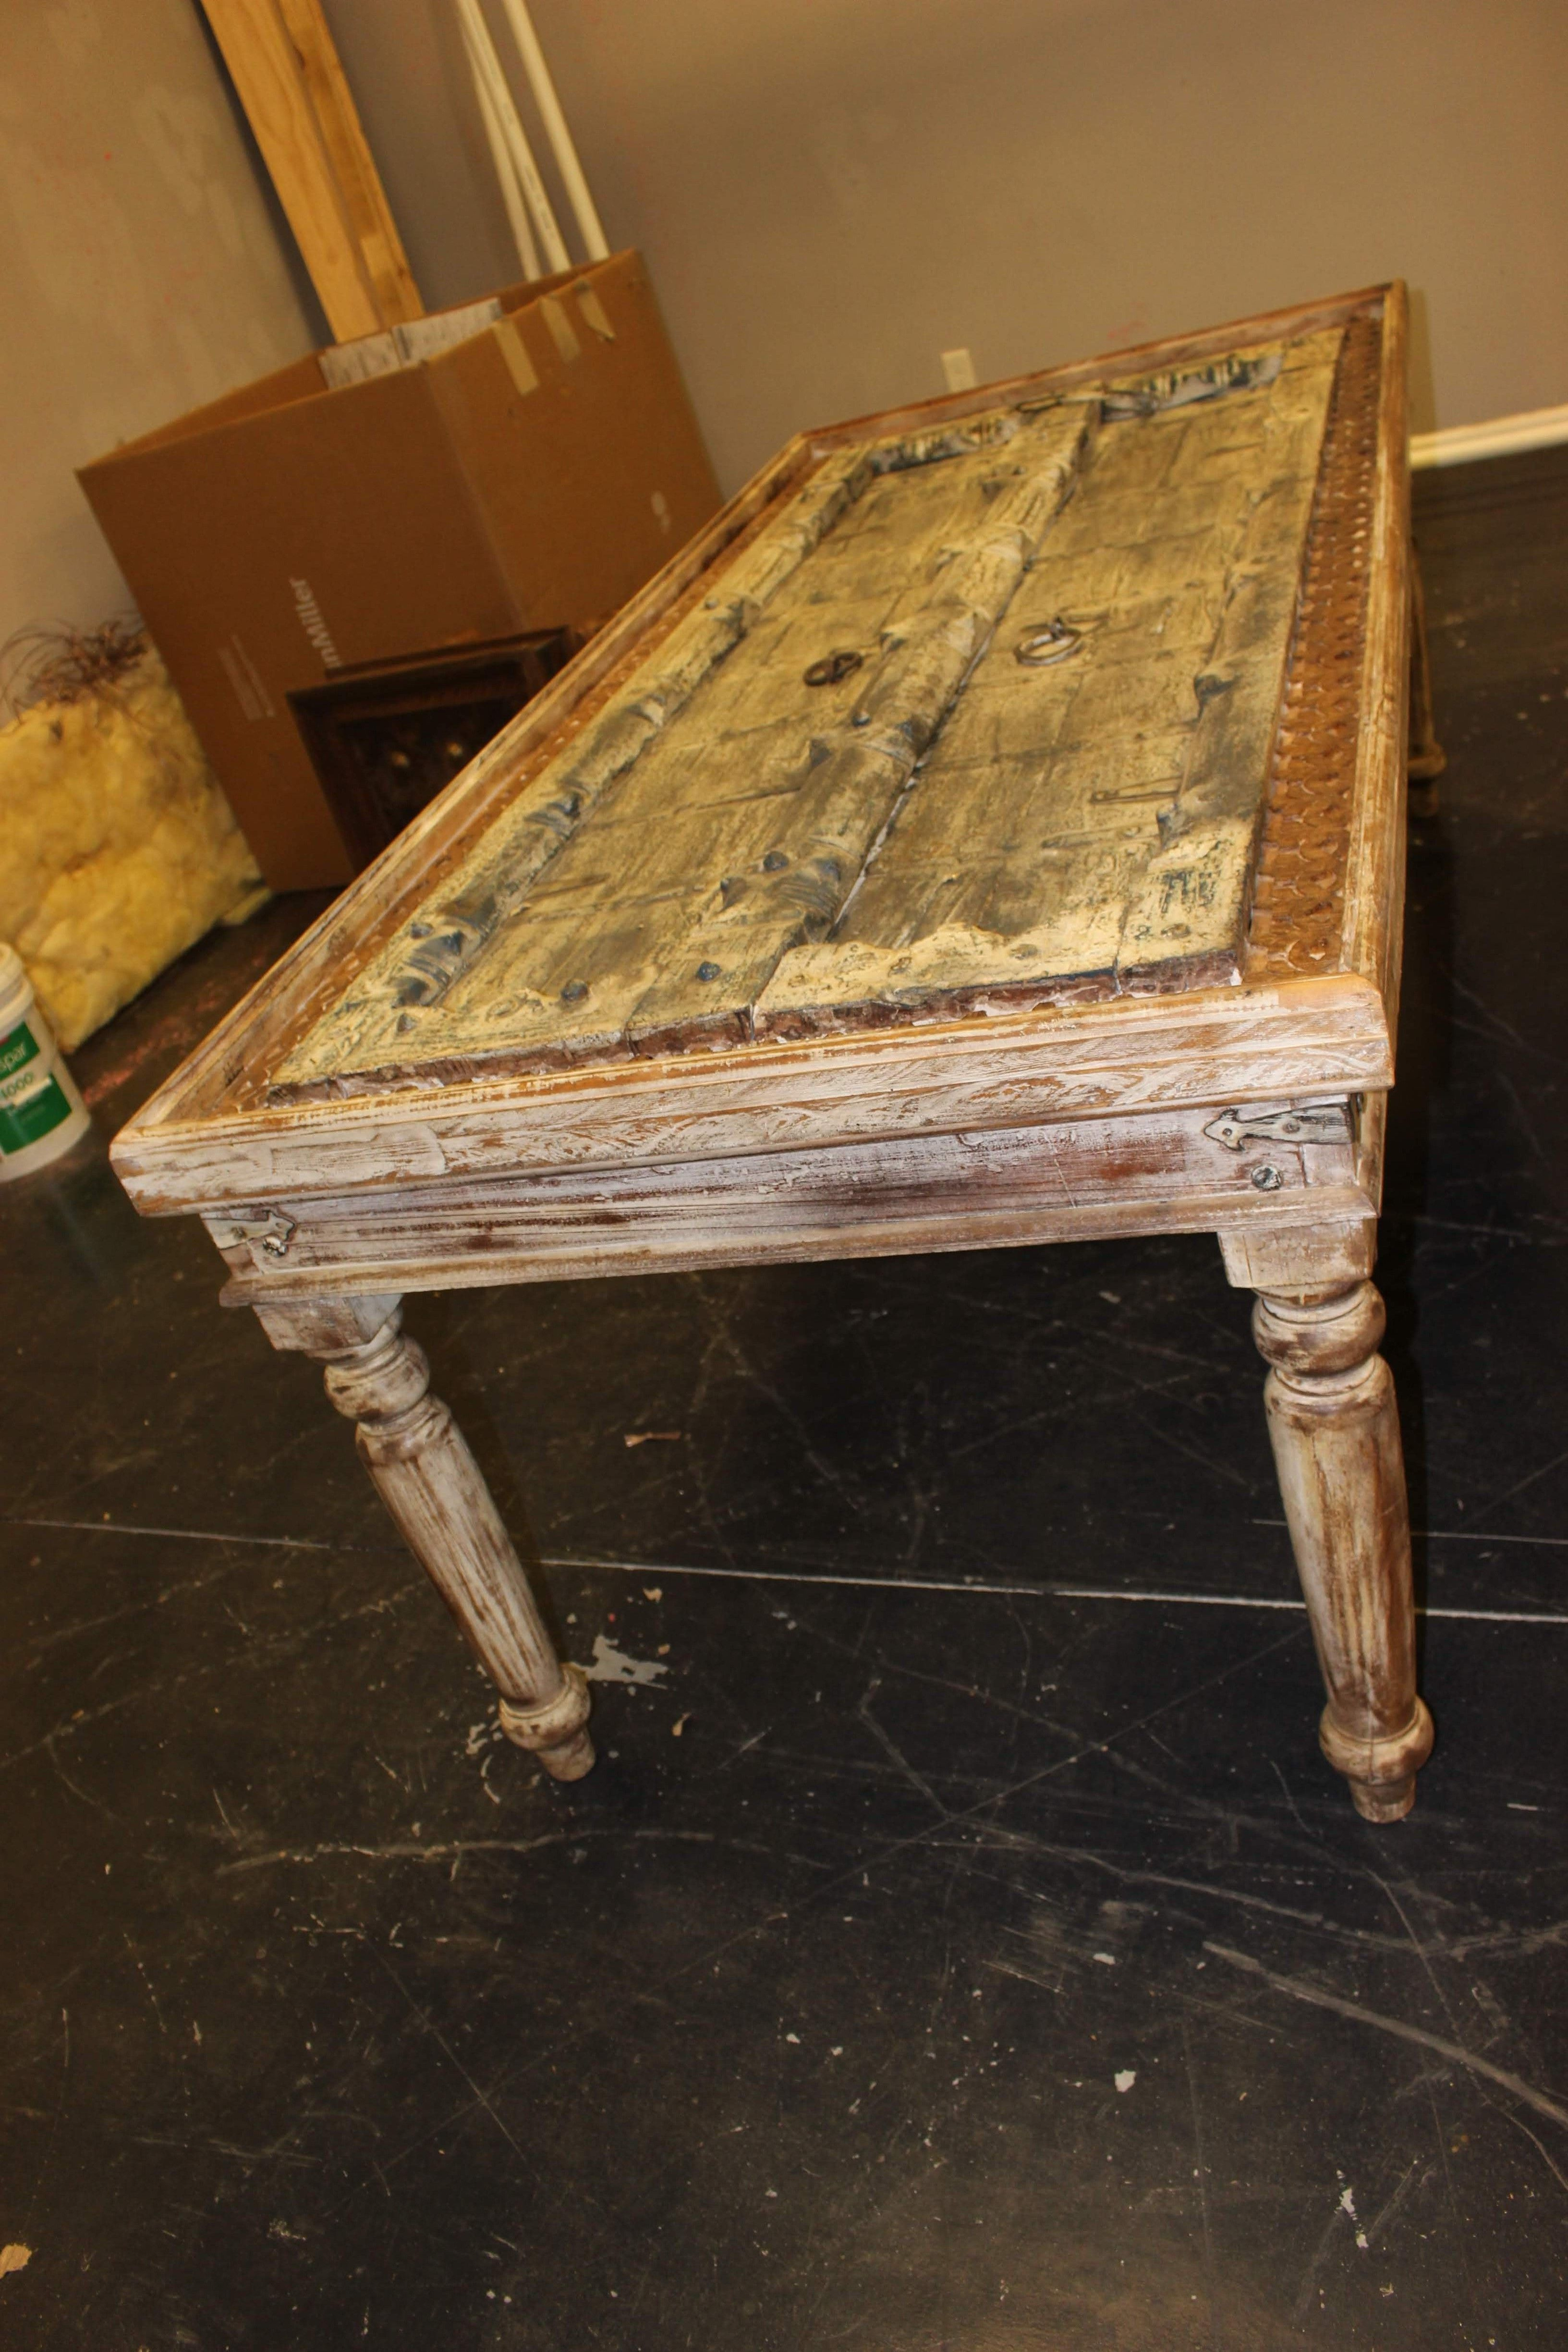 1920s Rustic Dining Table In 2021 Dining Table Wooden Dining Tables Rustic Doors